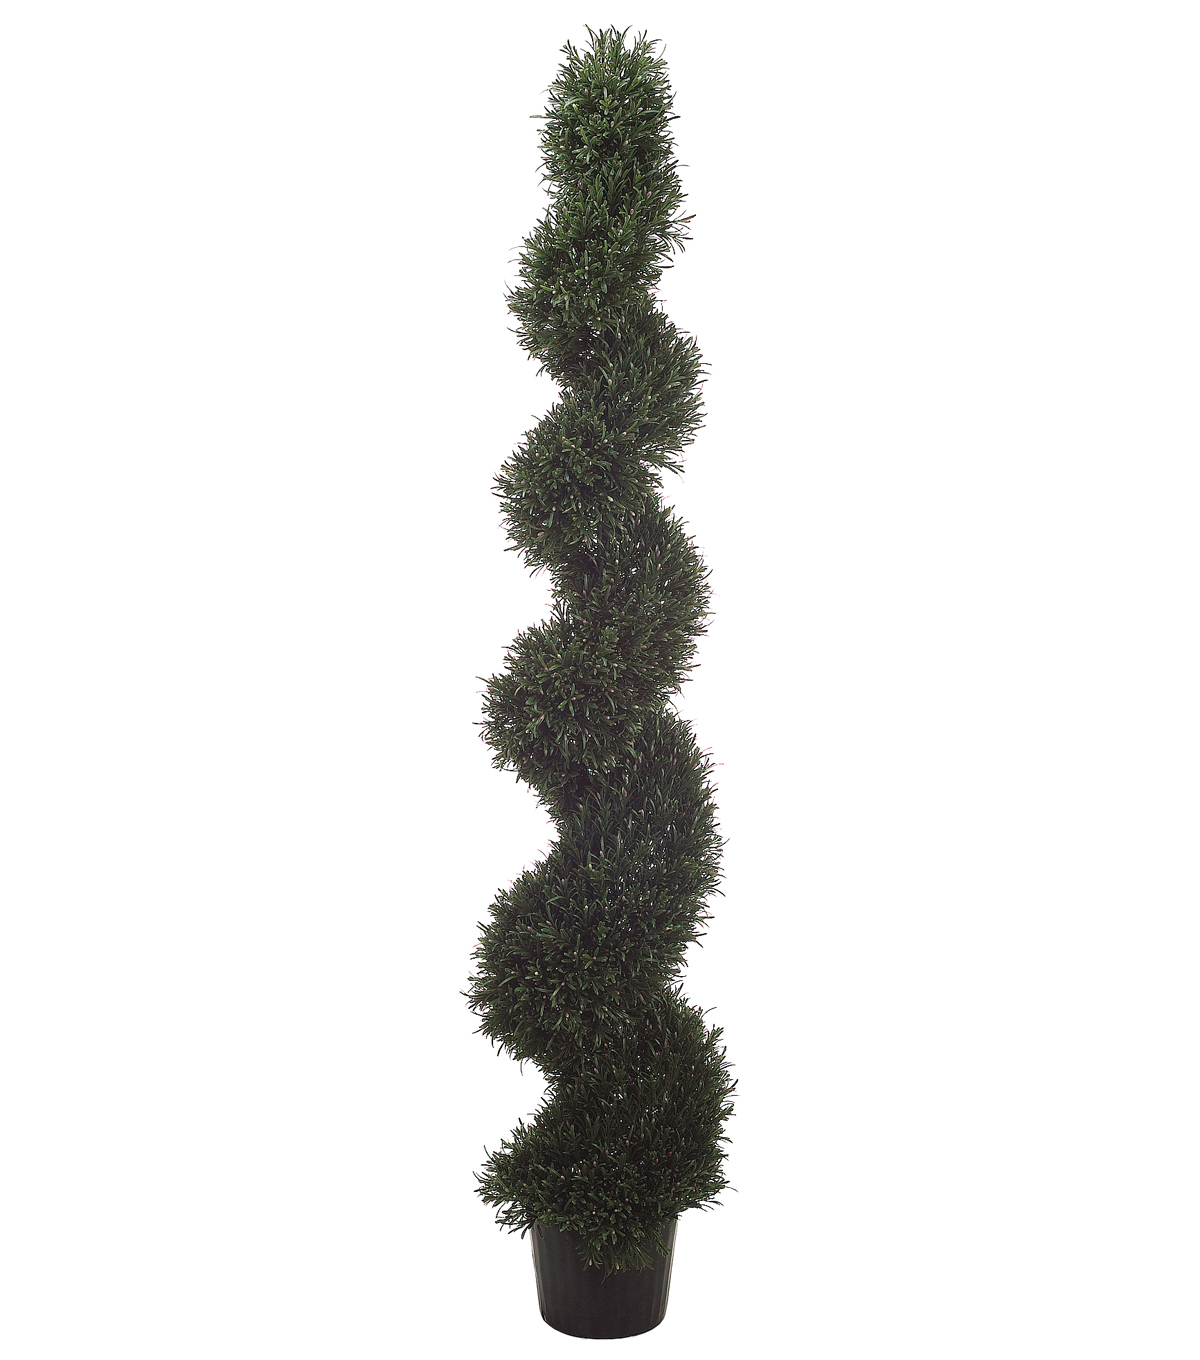 Spiral Rosemary Topiary in Plastic Pot 6\u0027